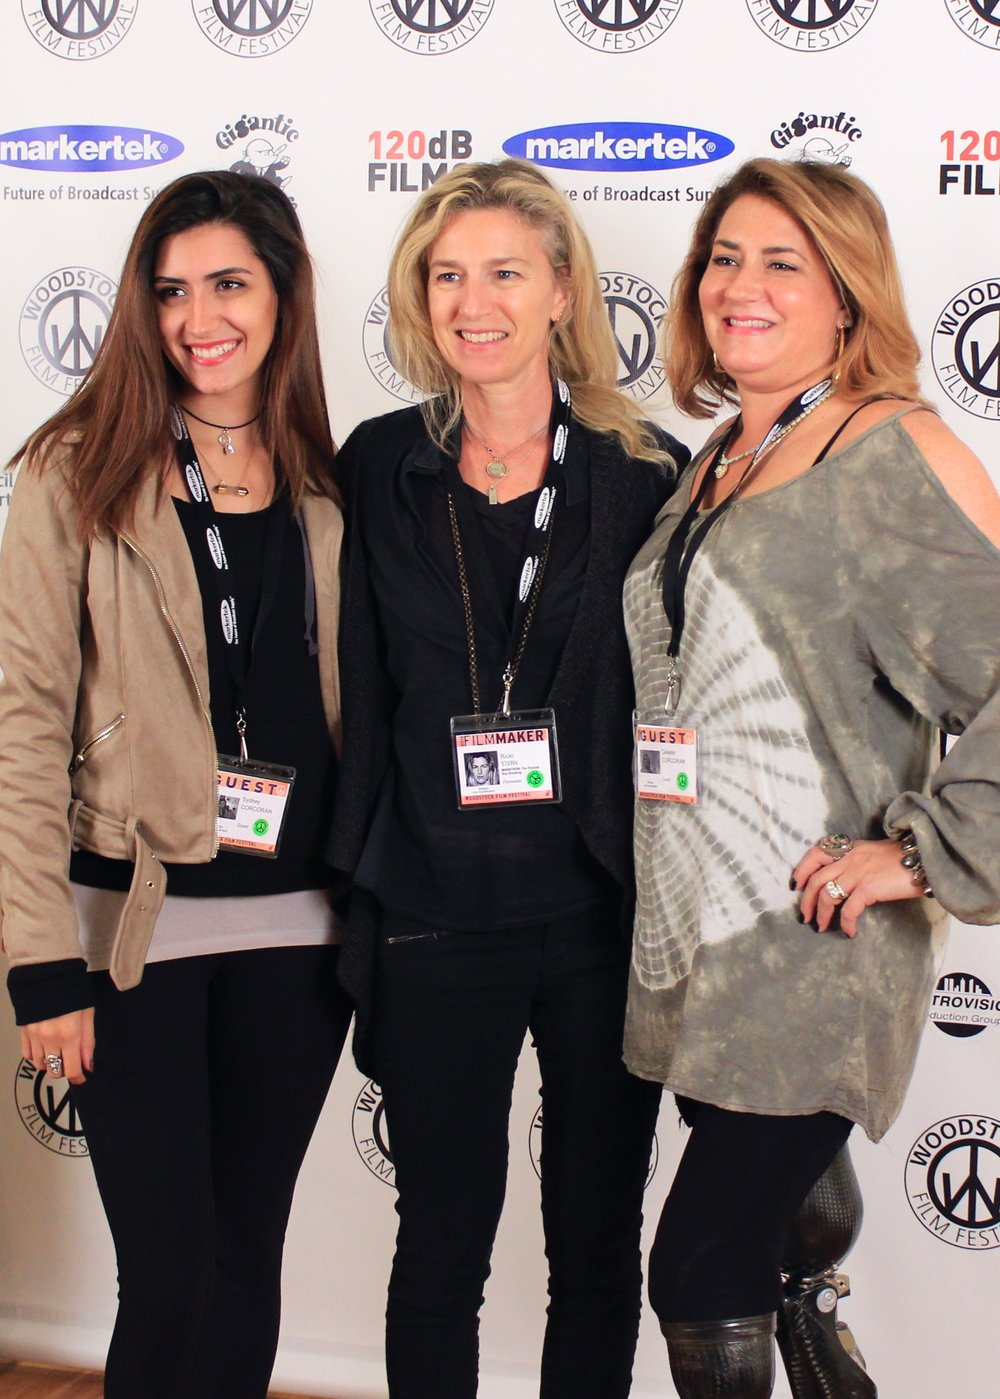 Marathon survivors Celeste and Sydney Corcoran with Director Ricki Stern (Marathon: The Patriots Day Bombing) at the 17th annual Woodstock Film Festival. Photo by Naomi Schmidt